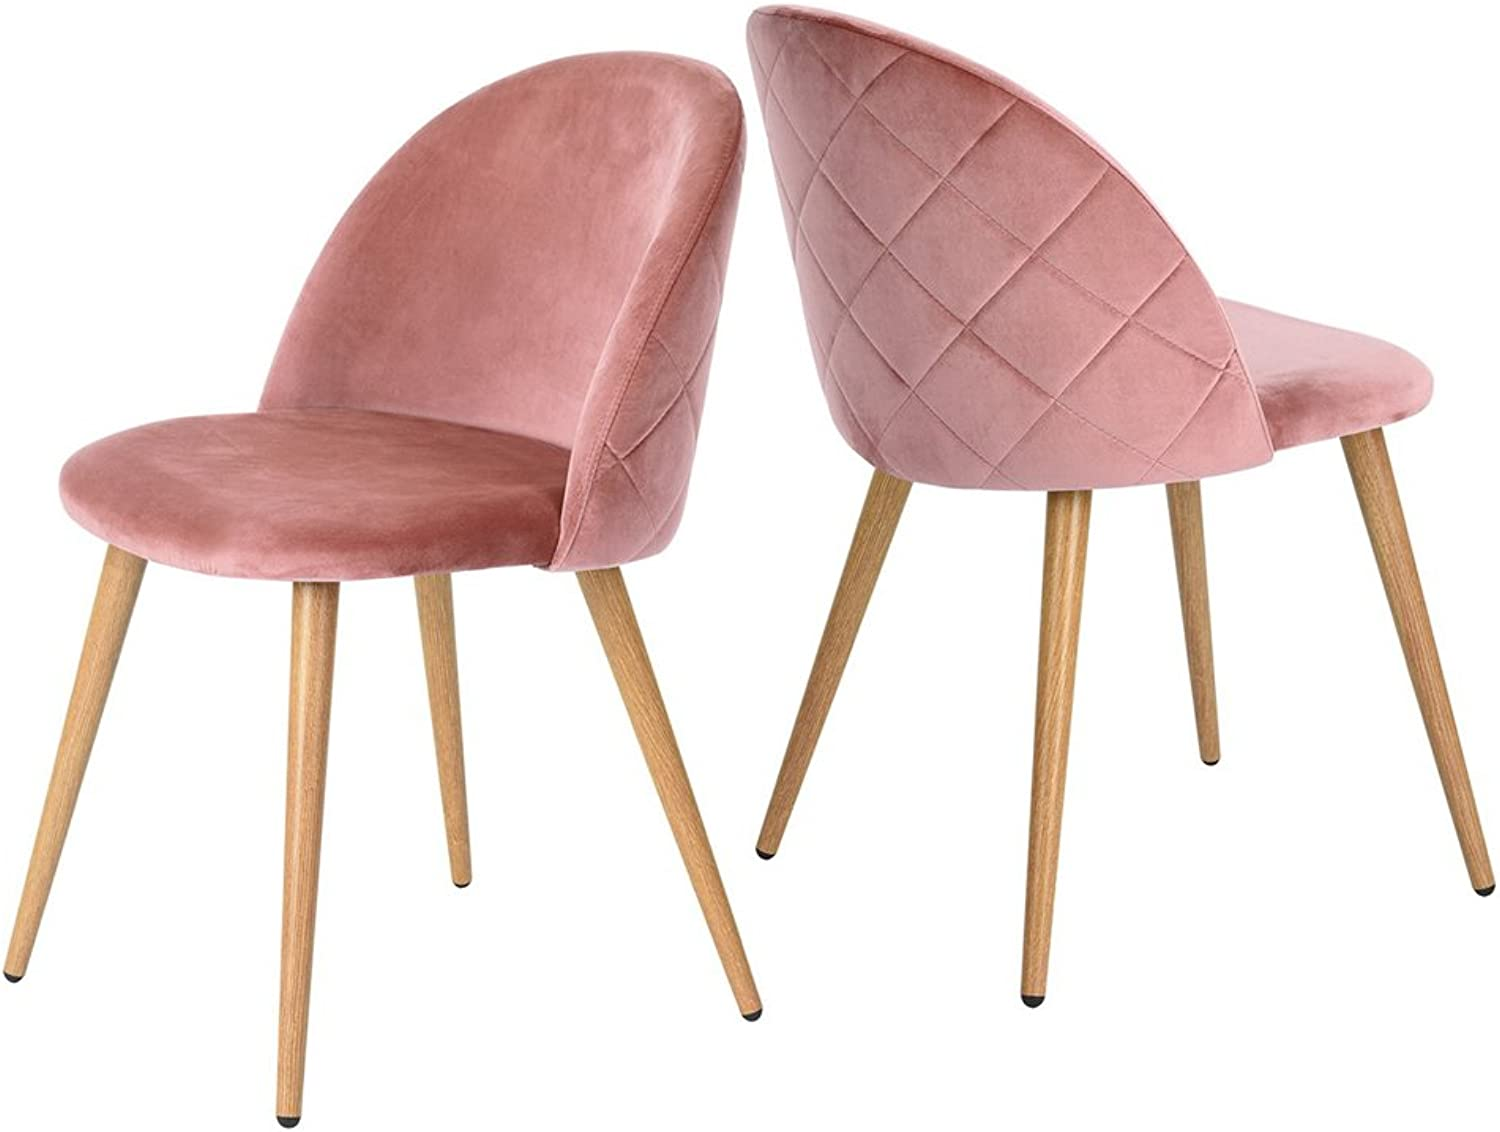 HOMY CASA Set of 2 Patio Dining Room Chairs Pineapple Velvet Pattern Seat Pad Wood Leg with Cap Knock Down Design,pink, L18.5W18.5H30.5